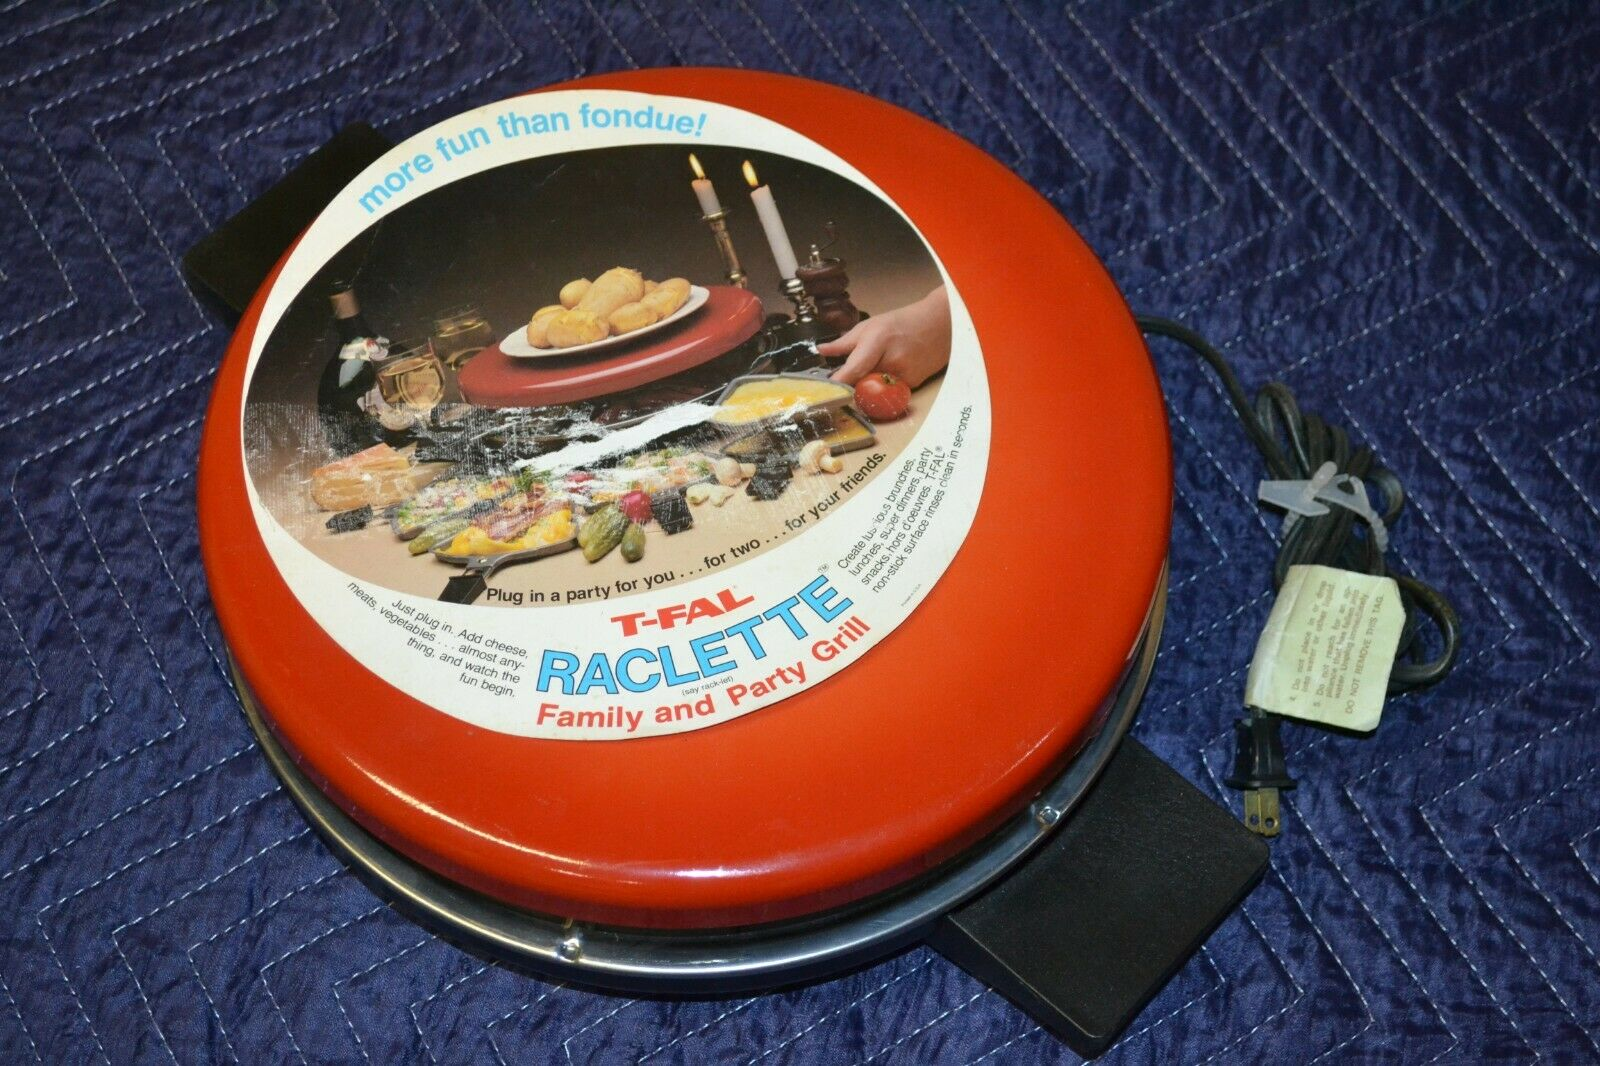 VTG T-FAL Tefal Orange Raclette Swiss Style Cheese Grill, Ma